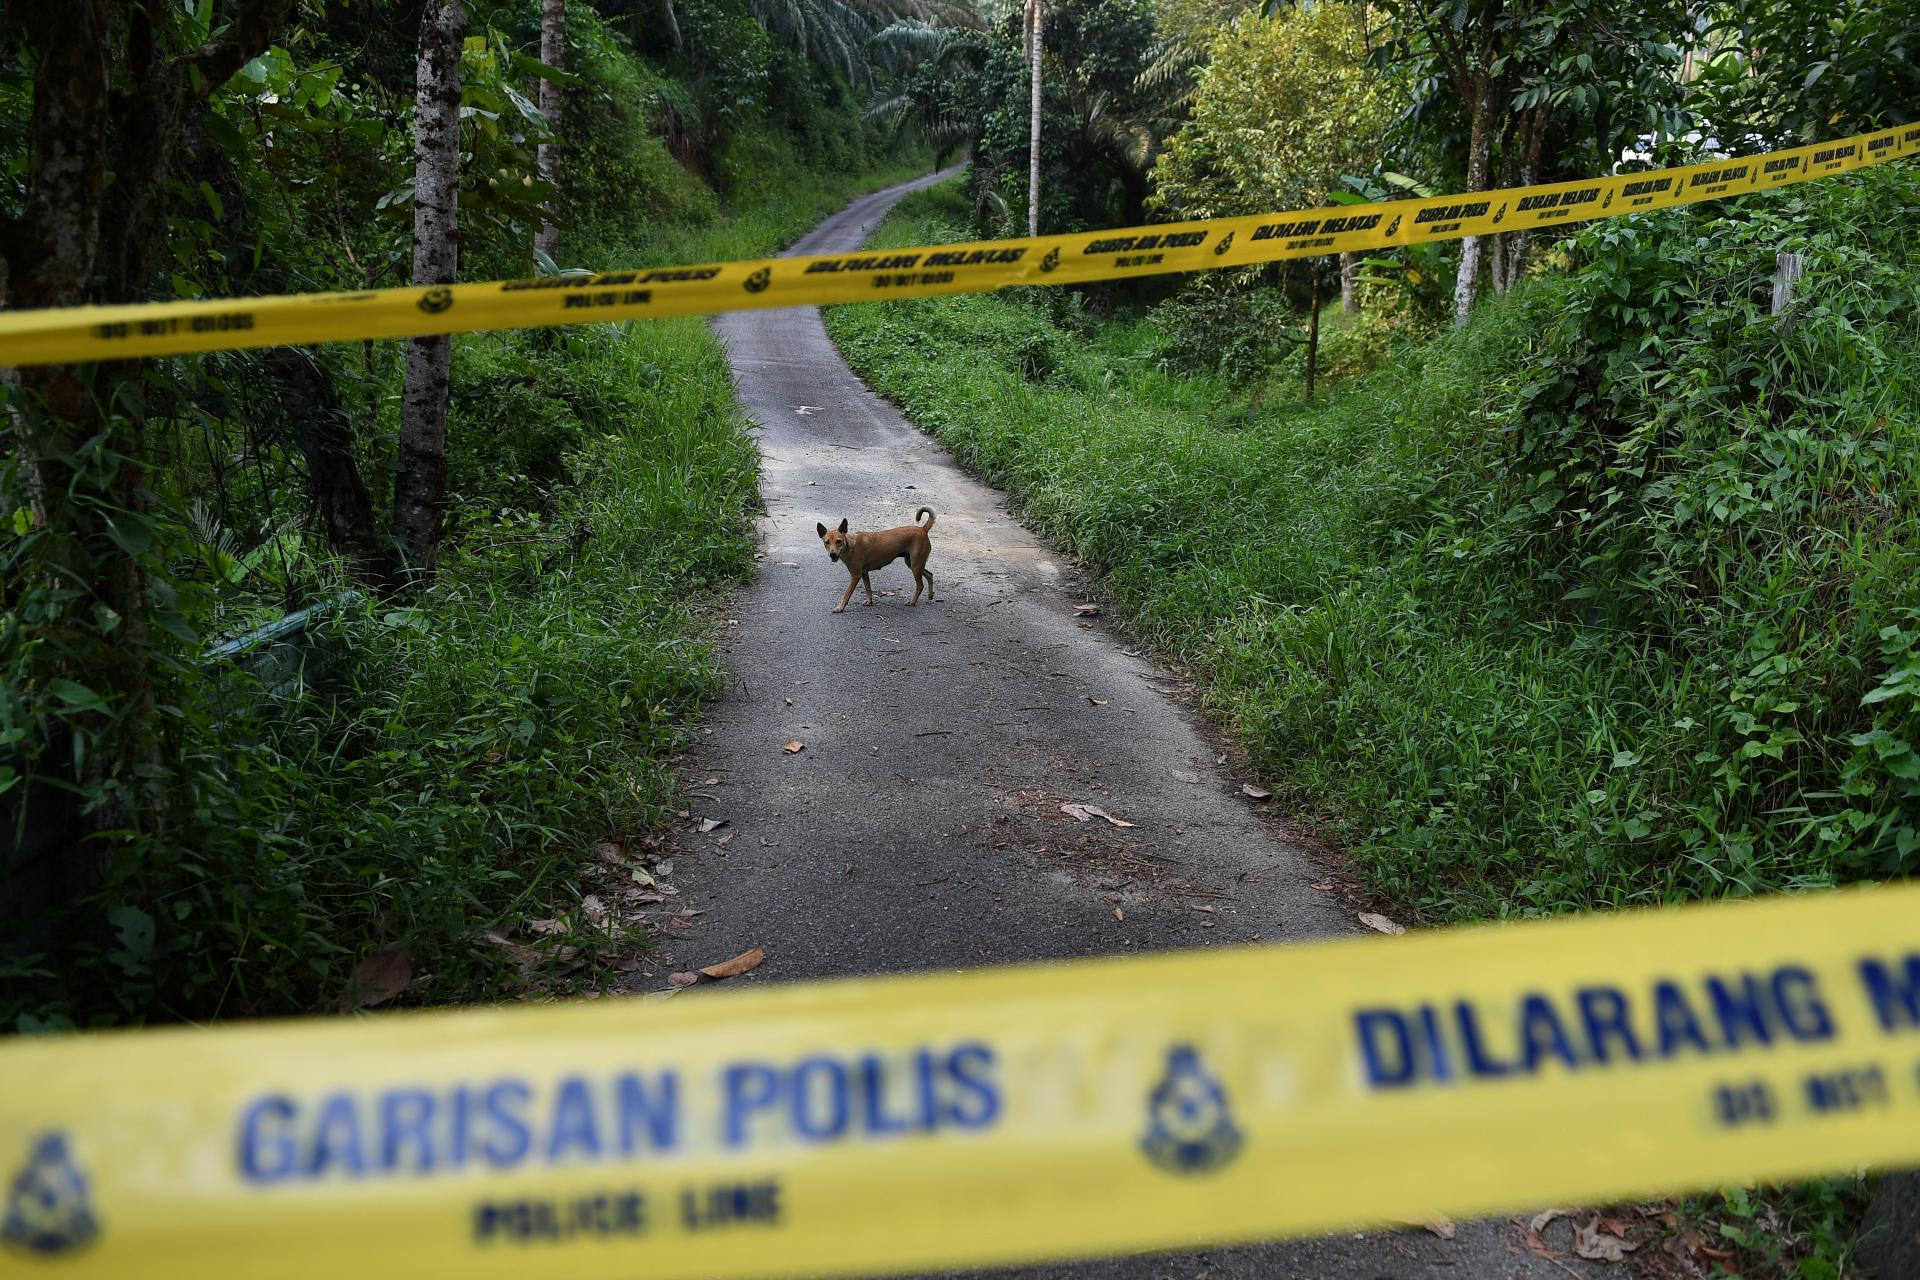 A dog walks behind a police line at an entrance to the Dusun Resort, where Nora Quoirin was last seen. Photo: AFP